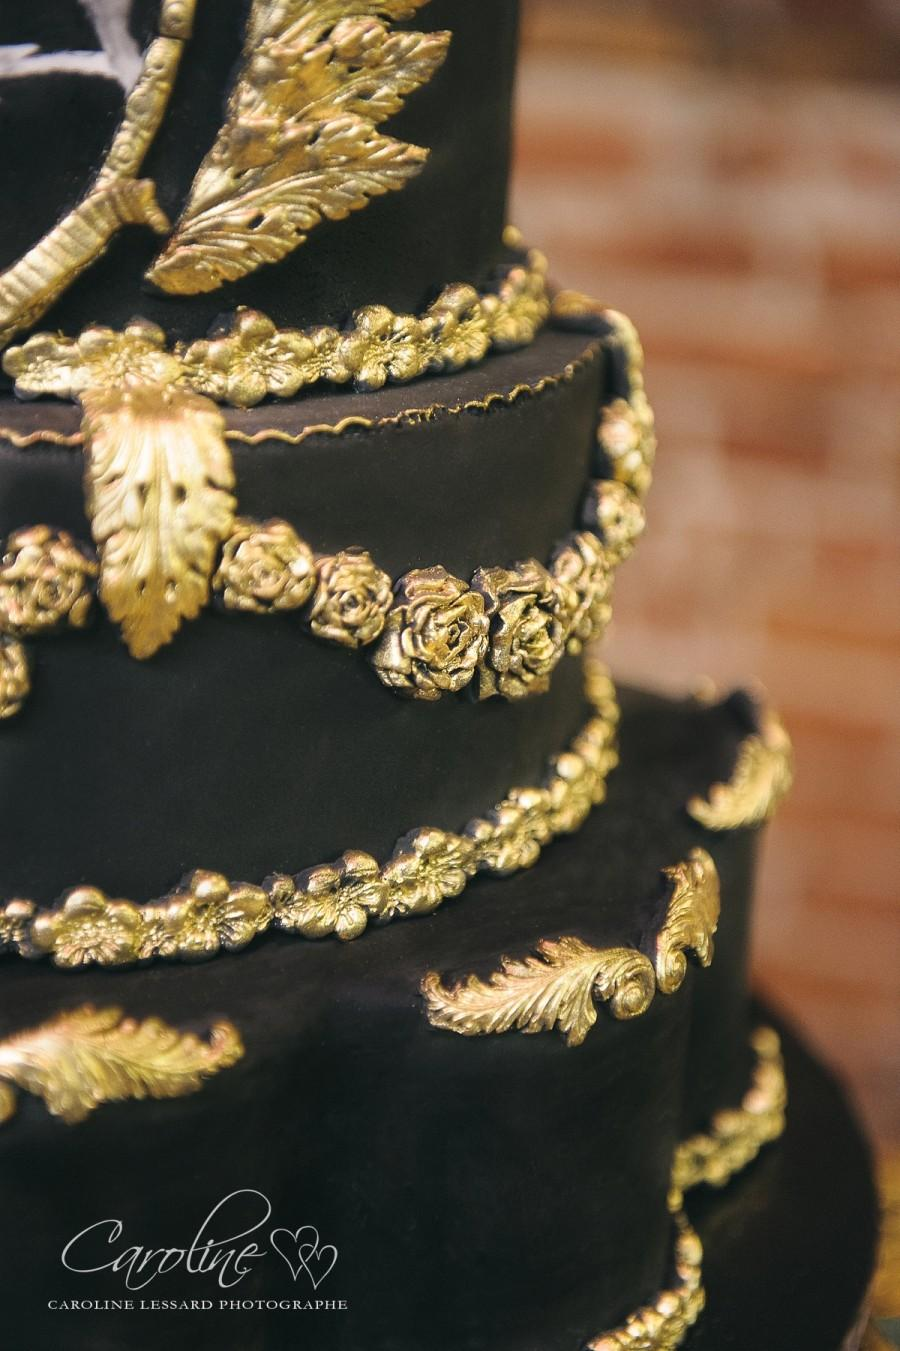 Black   Gold Wedding Cake  2512501   Weddbook Black   gold wedding cake